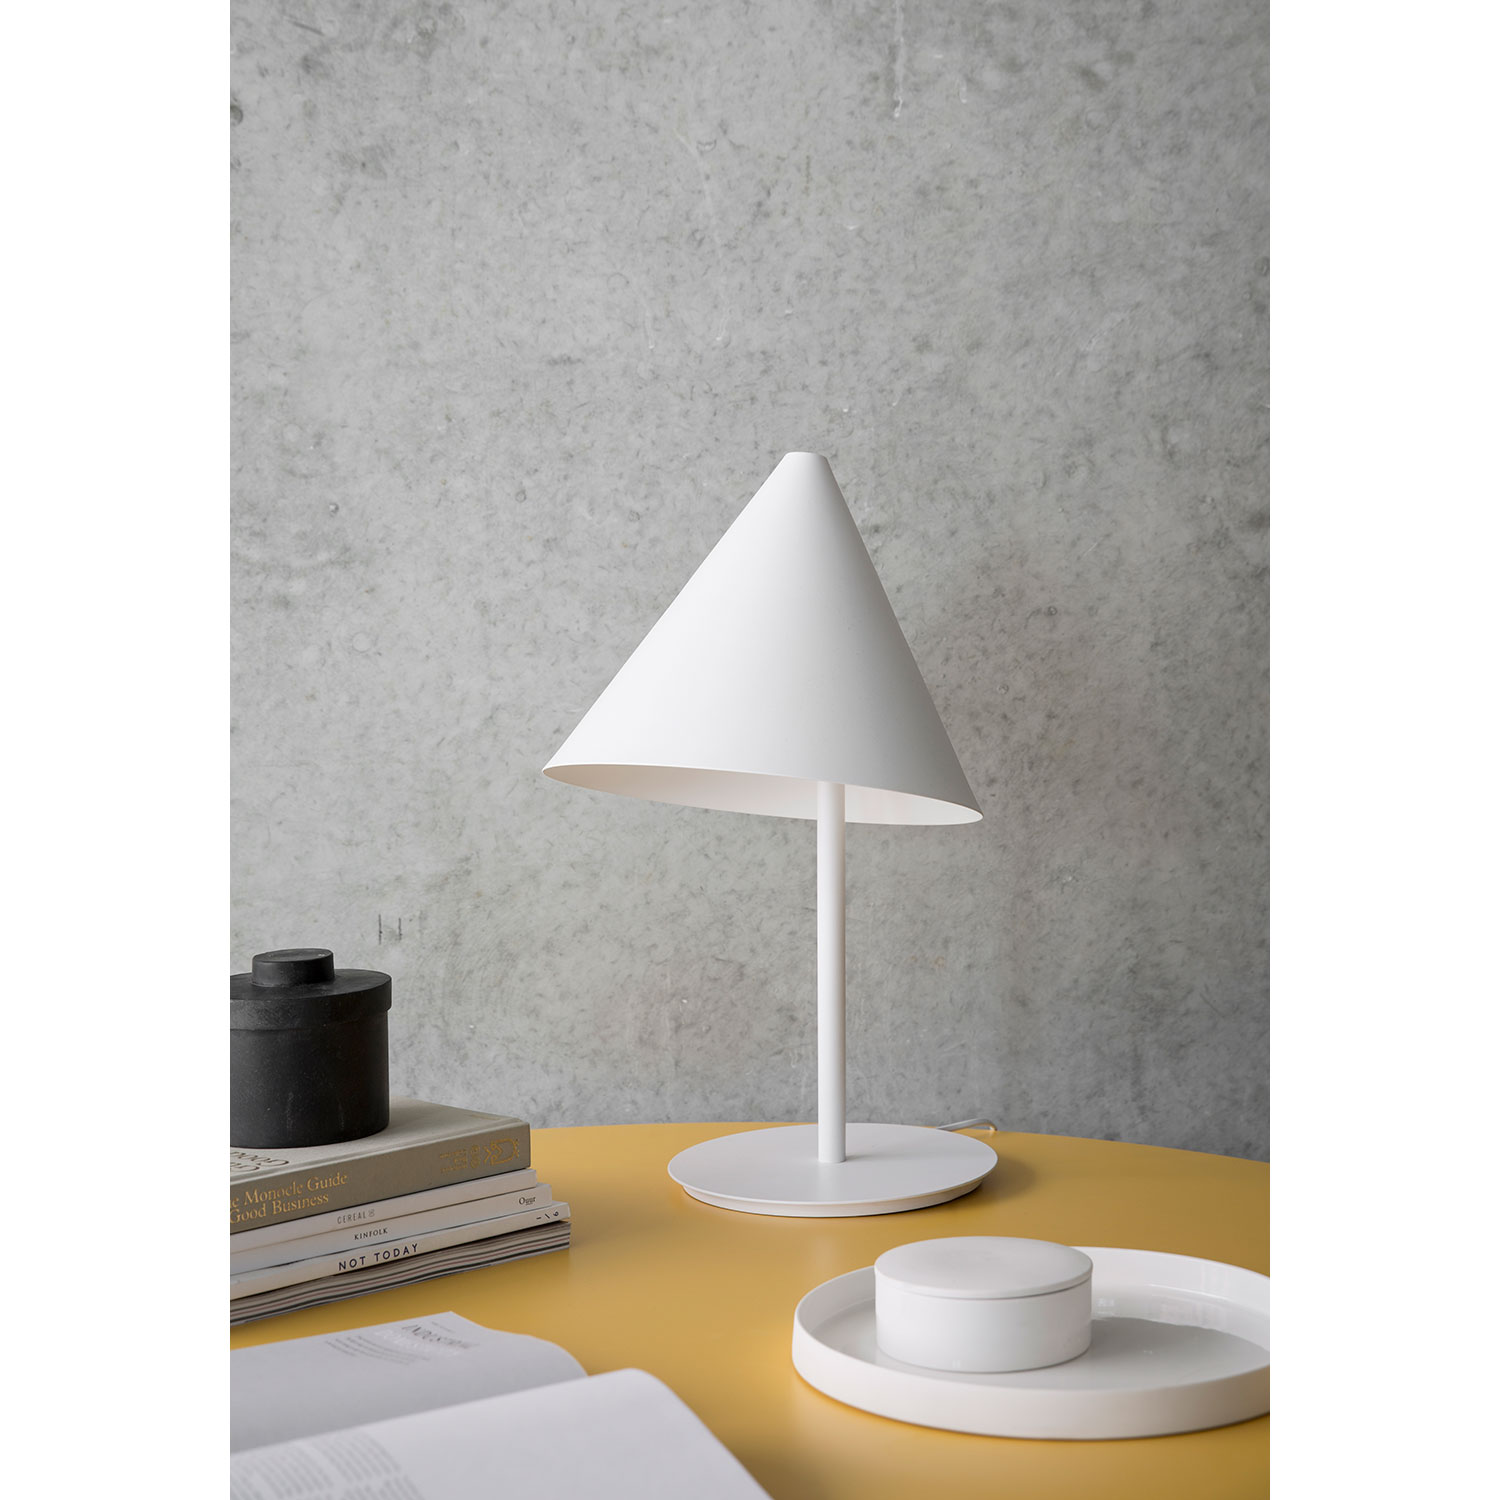 Conic bordslampa, vit